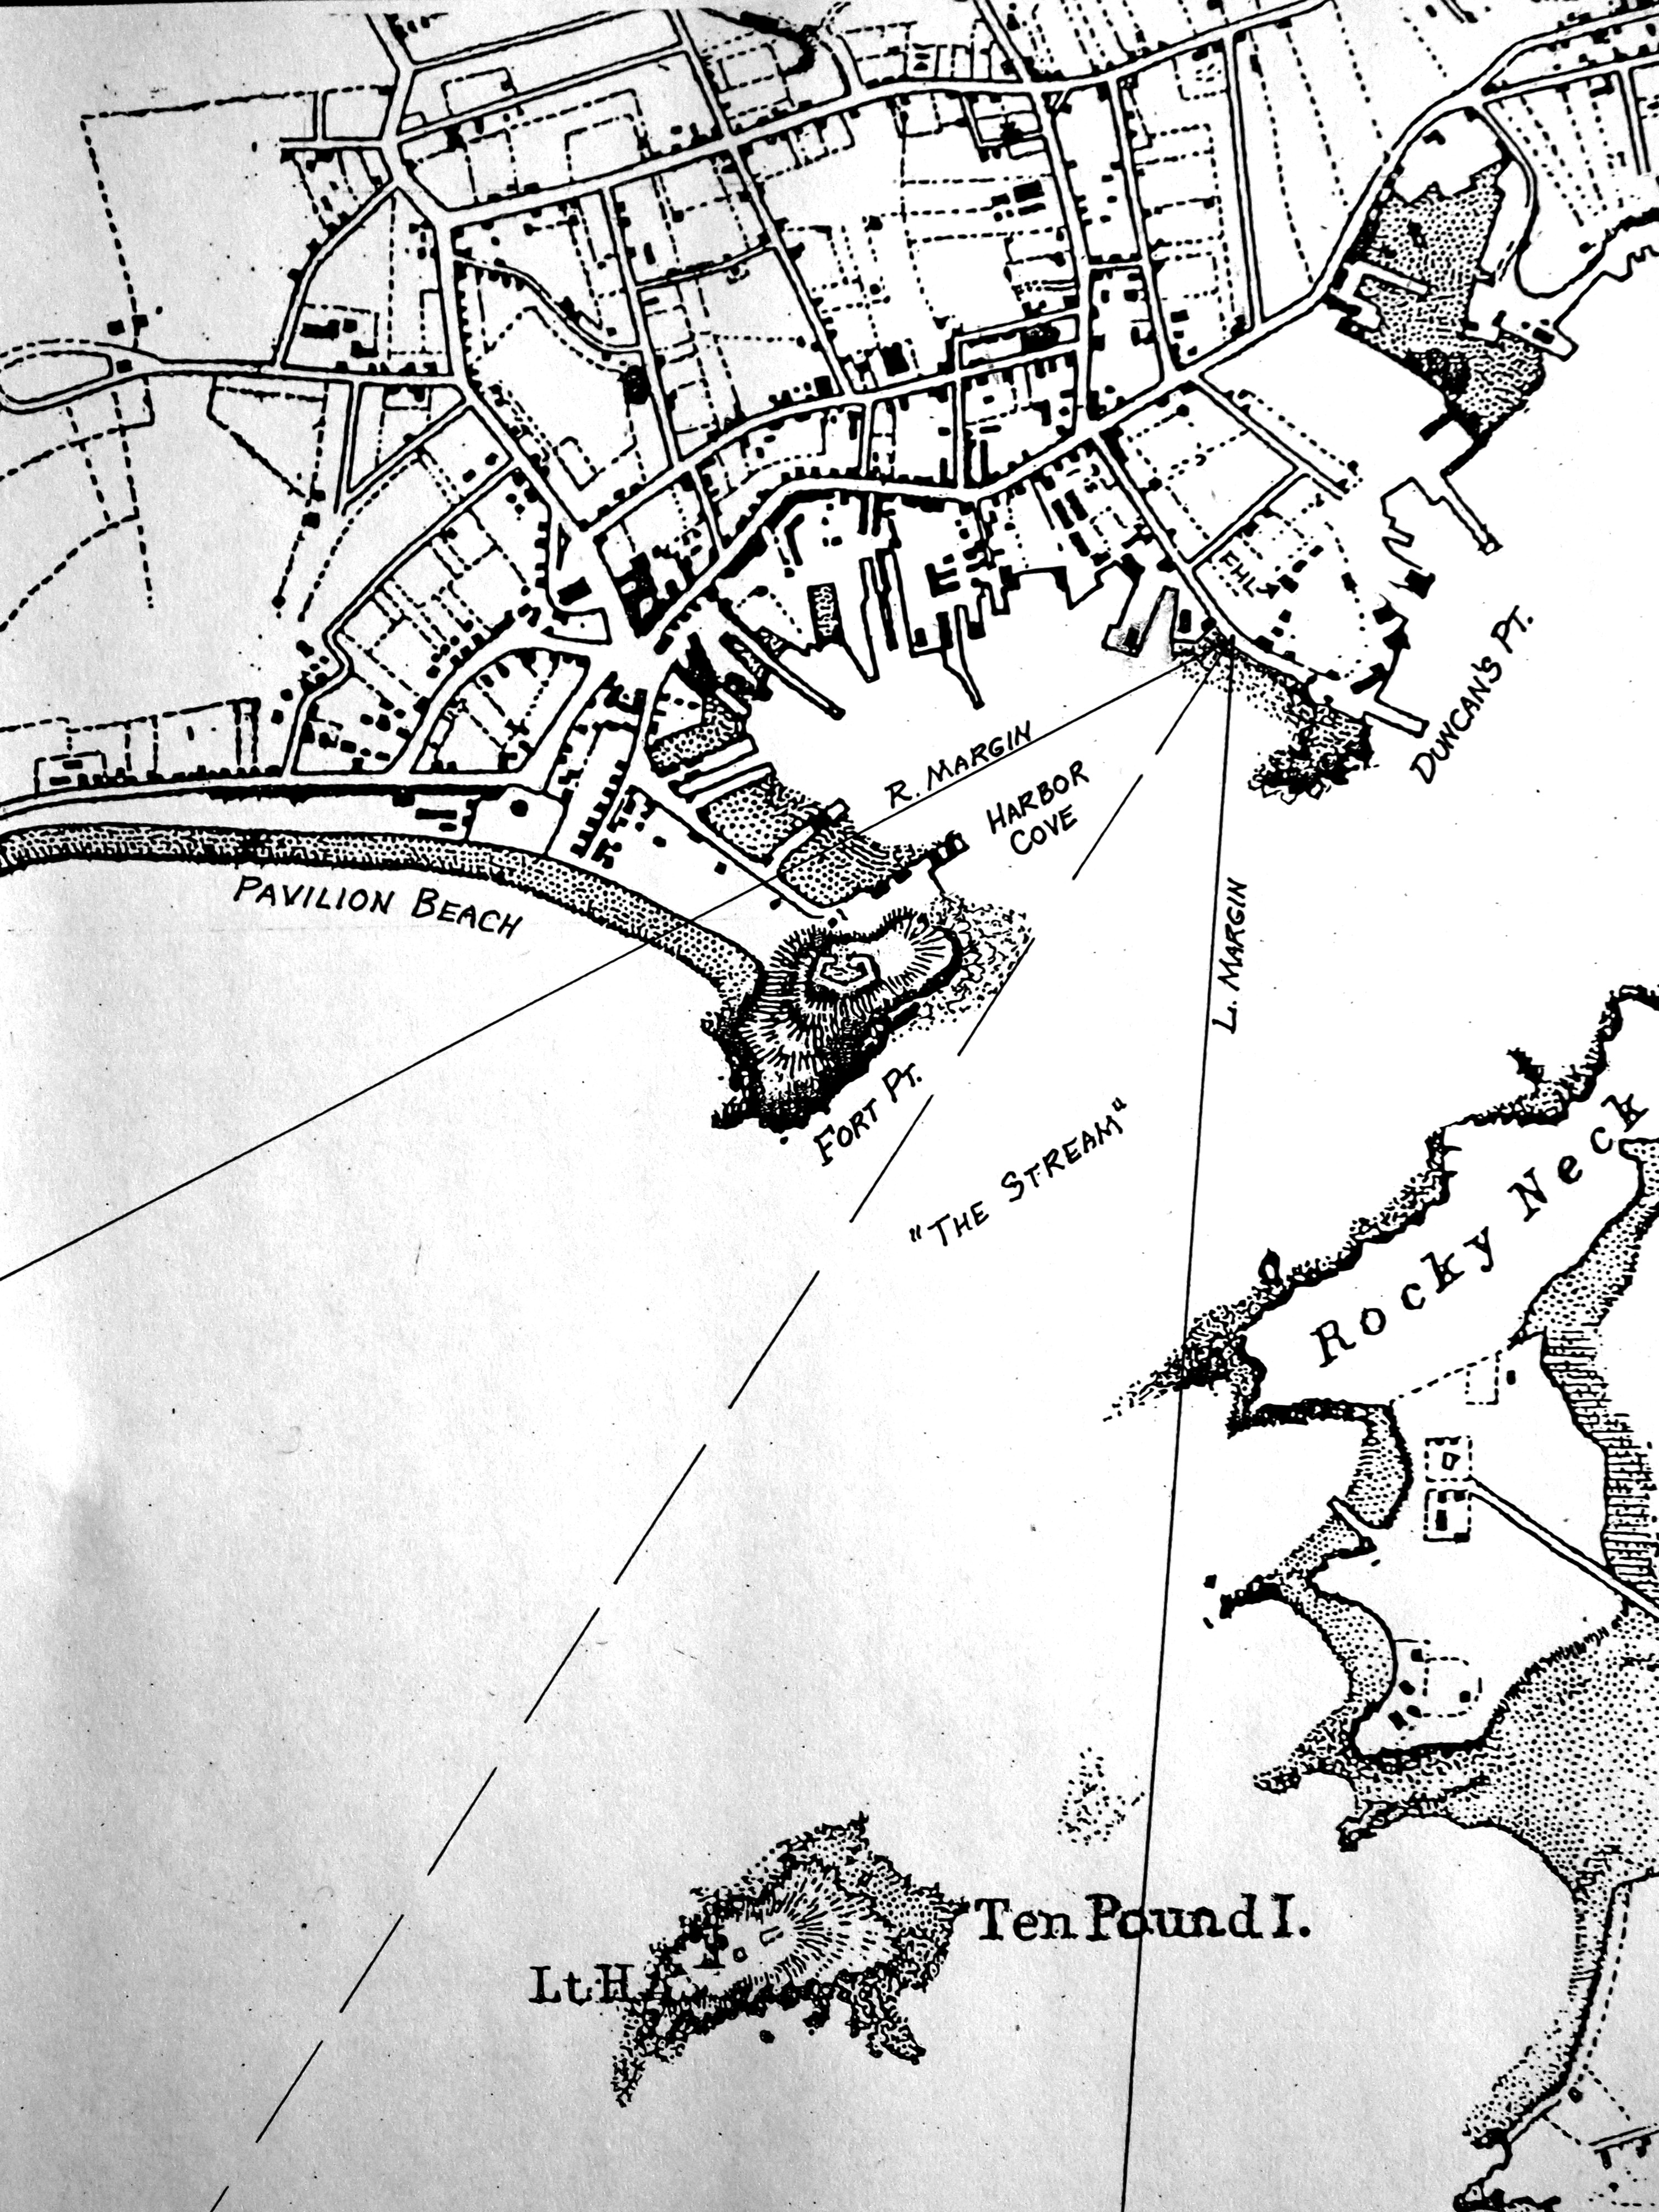 Fitz henry lane the fort and ten pound island gloucester proposed nvjuhfo Choice Image